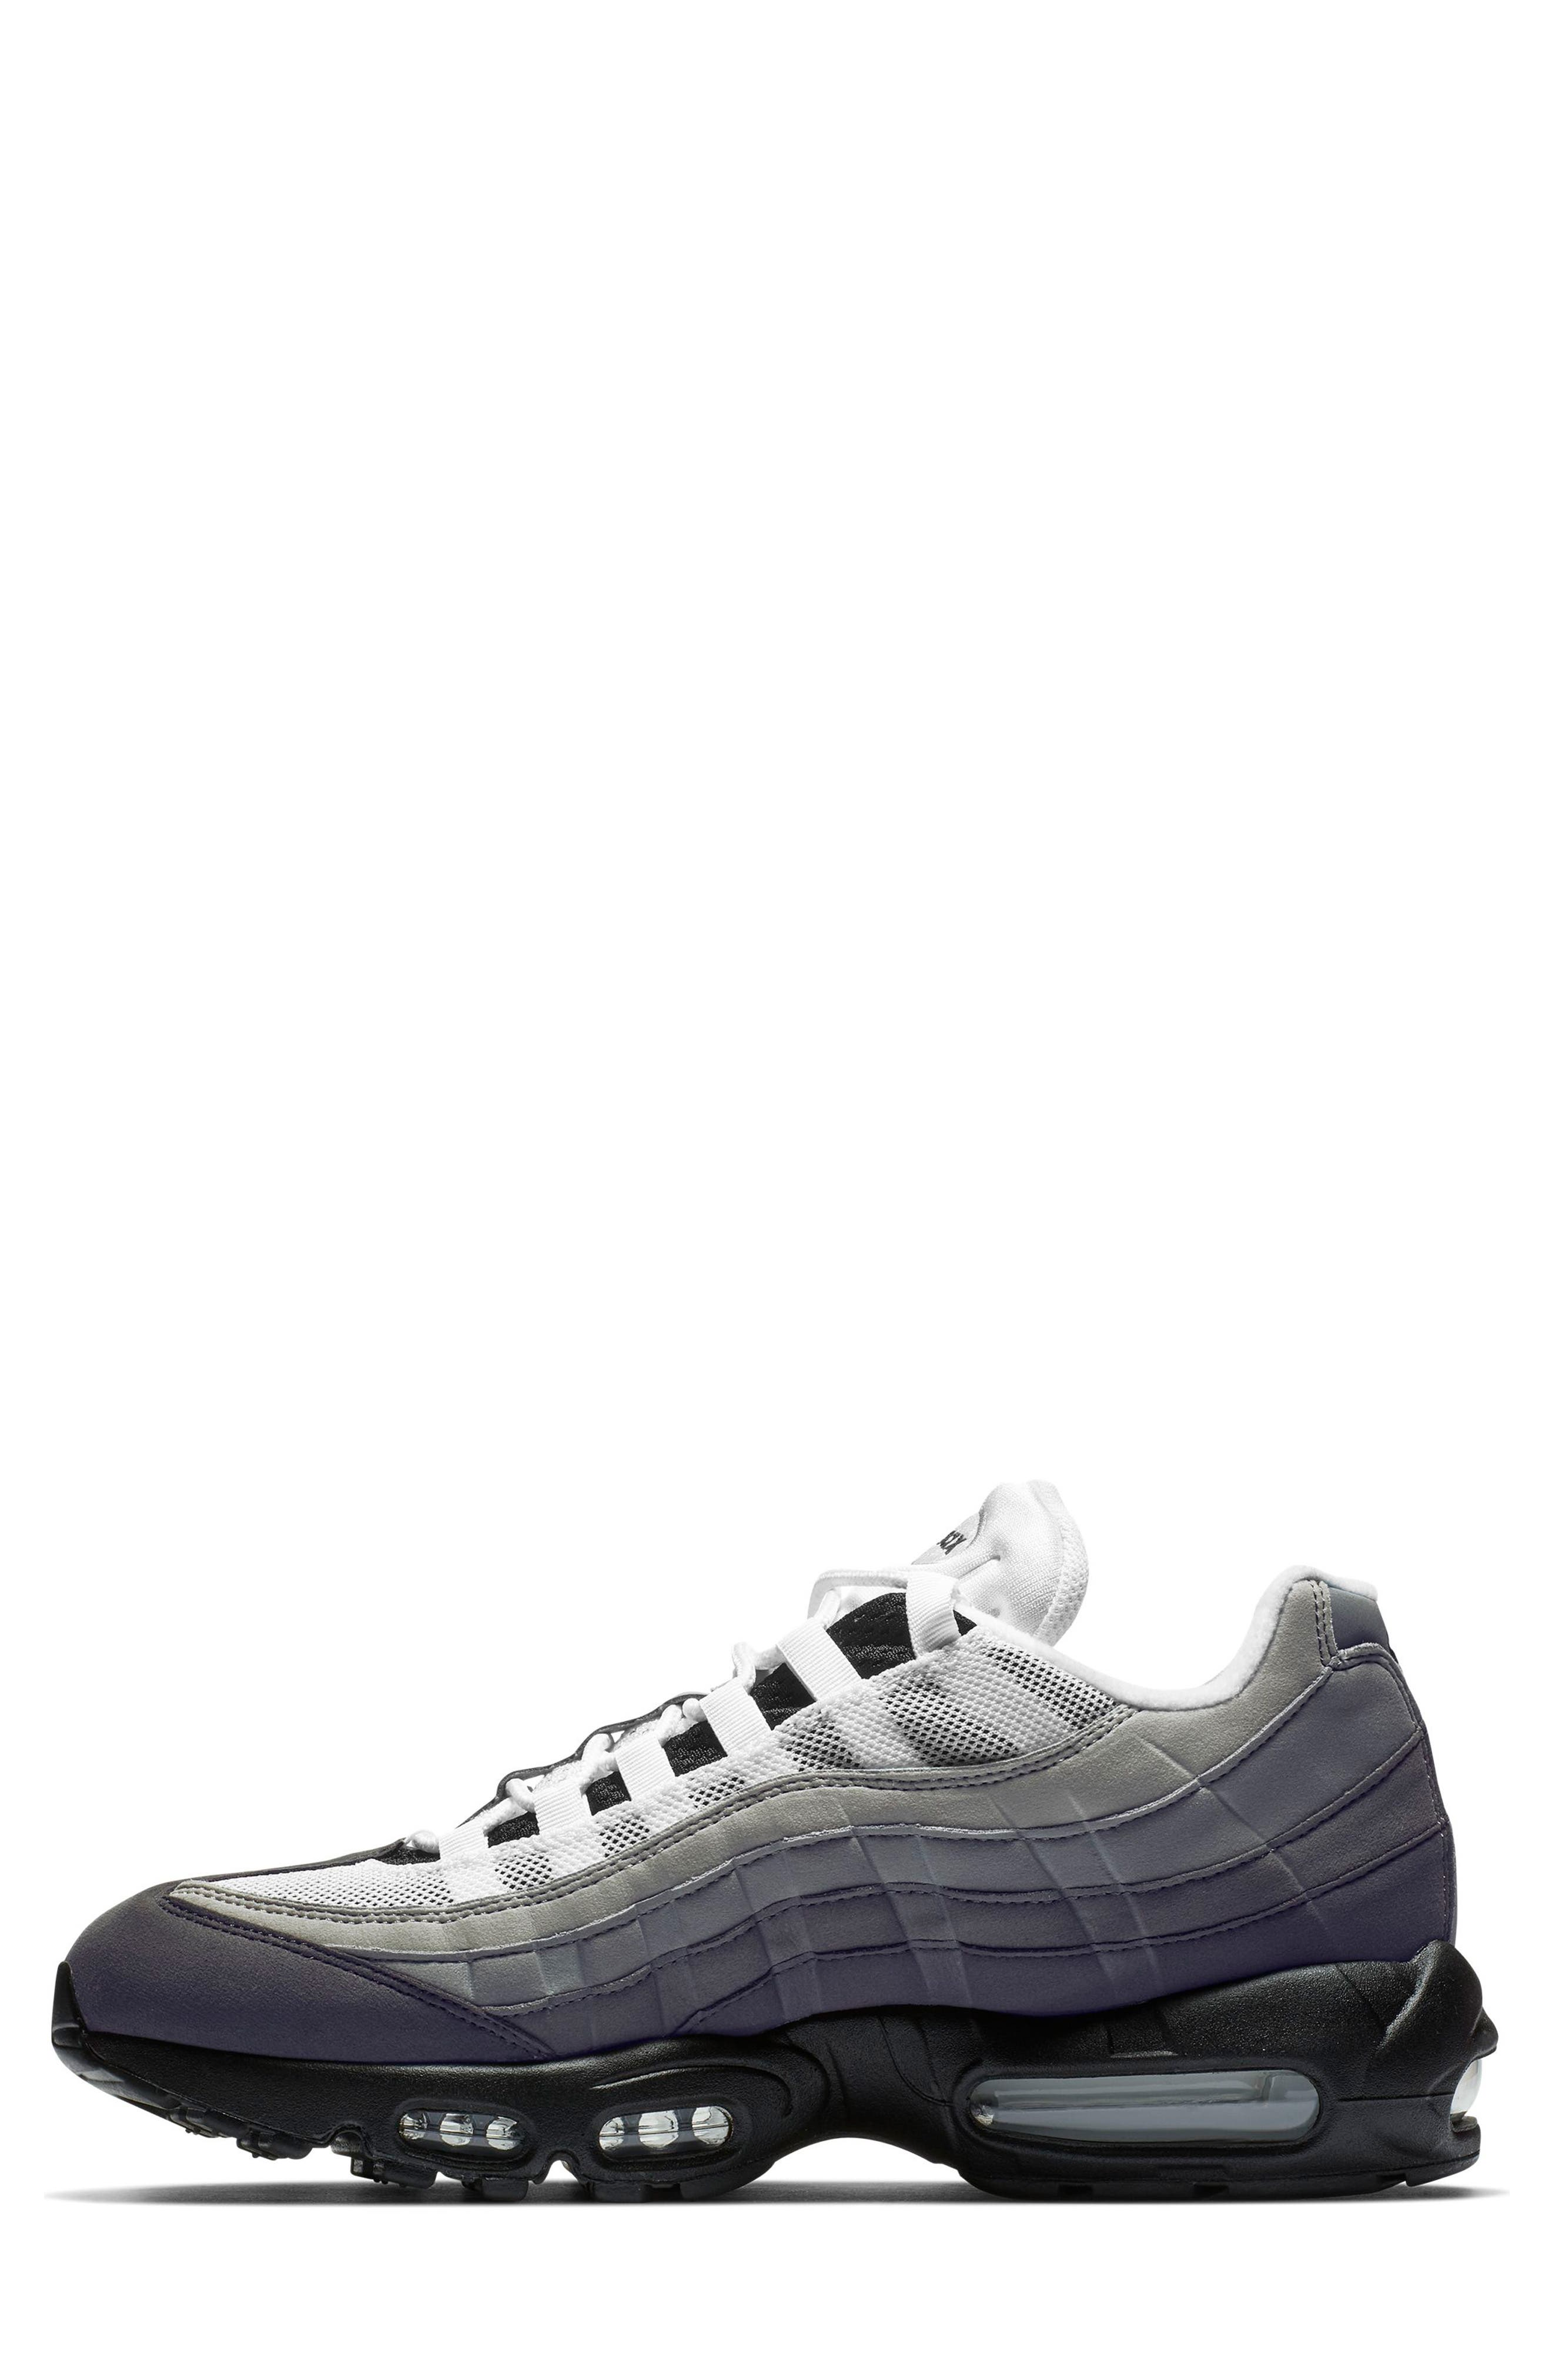 NIKE, Air Max 95 OG Sneaker, Alternate thumbnail 3, color, BLACK/ WHITE/ GRANITE/ DUST